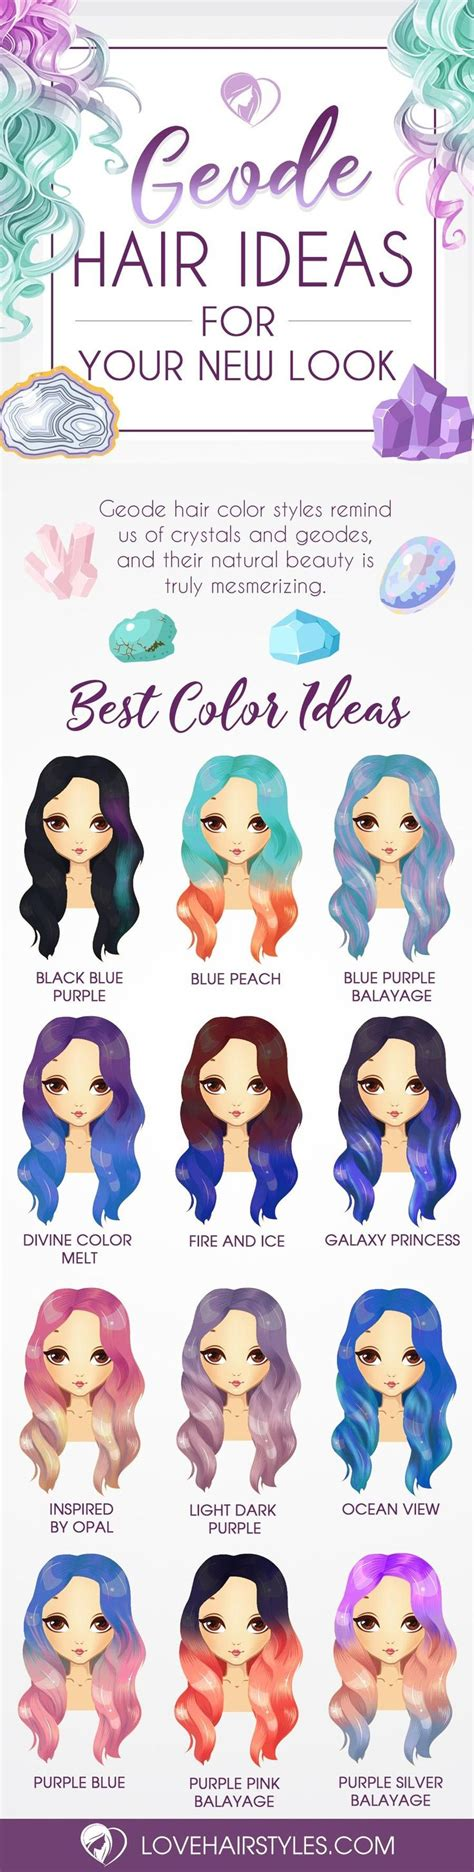 hair color try on trendy hair color try 18 geode hair color styles new